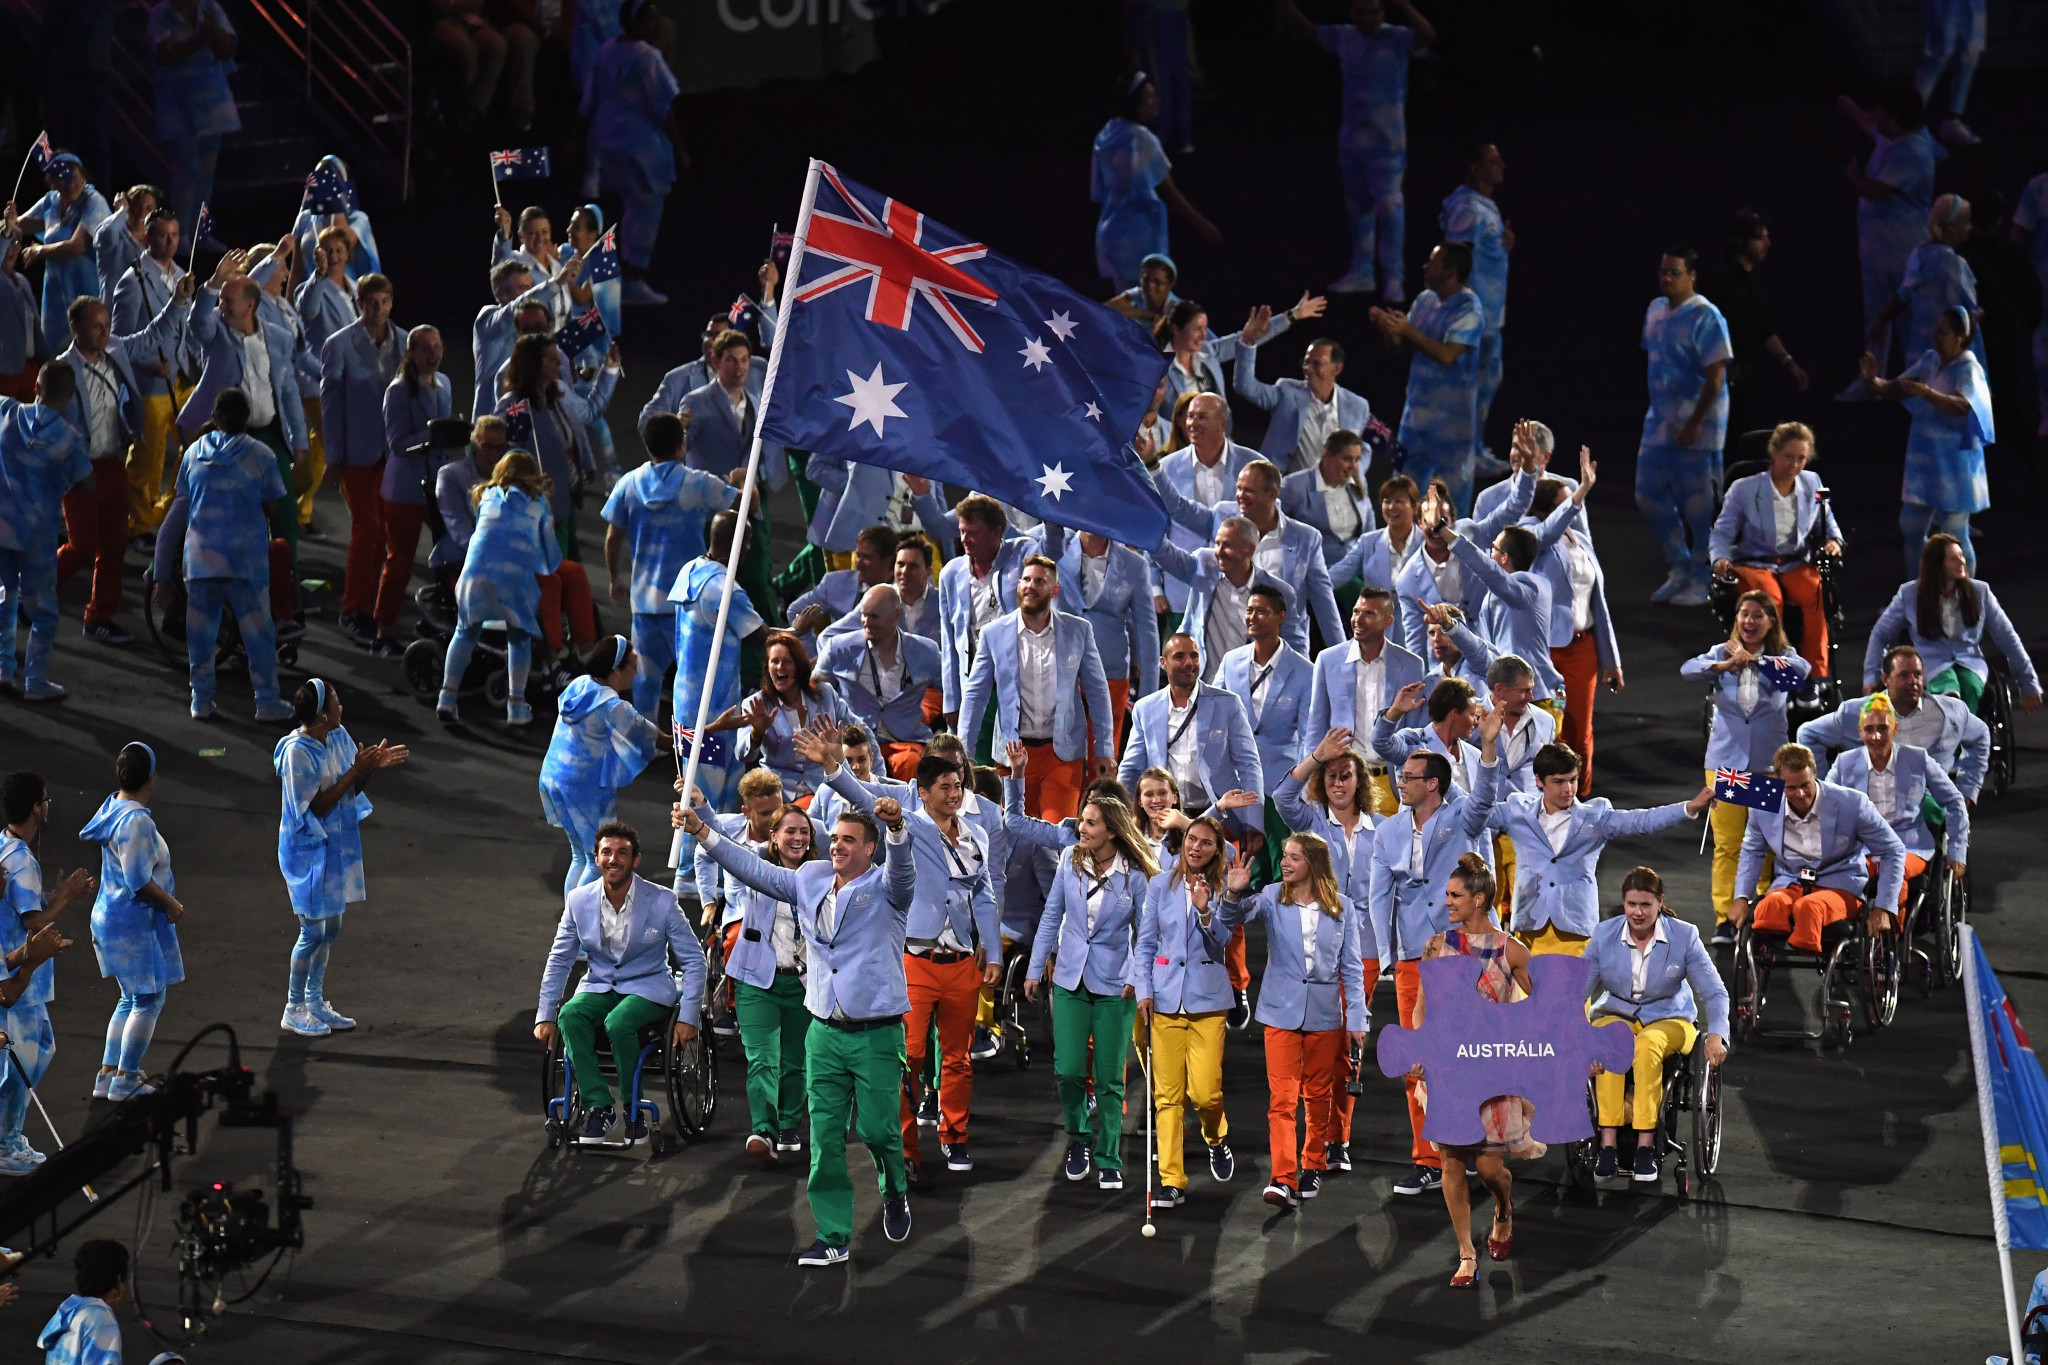 Anderson will still be part of the Australian team that travels to the Paralympics in Tokyo, having finished fifth in the final medals table at Rio 2016 ©Getty Images